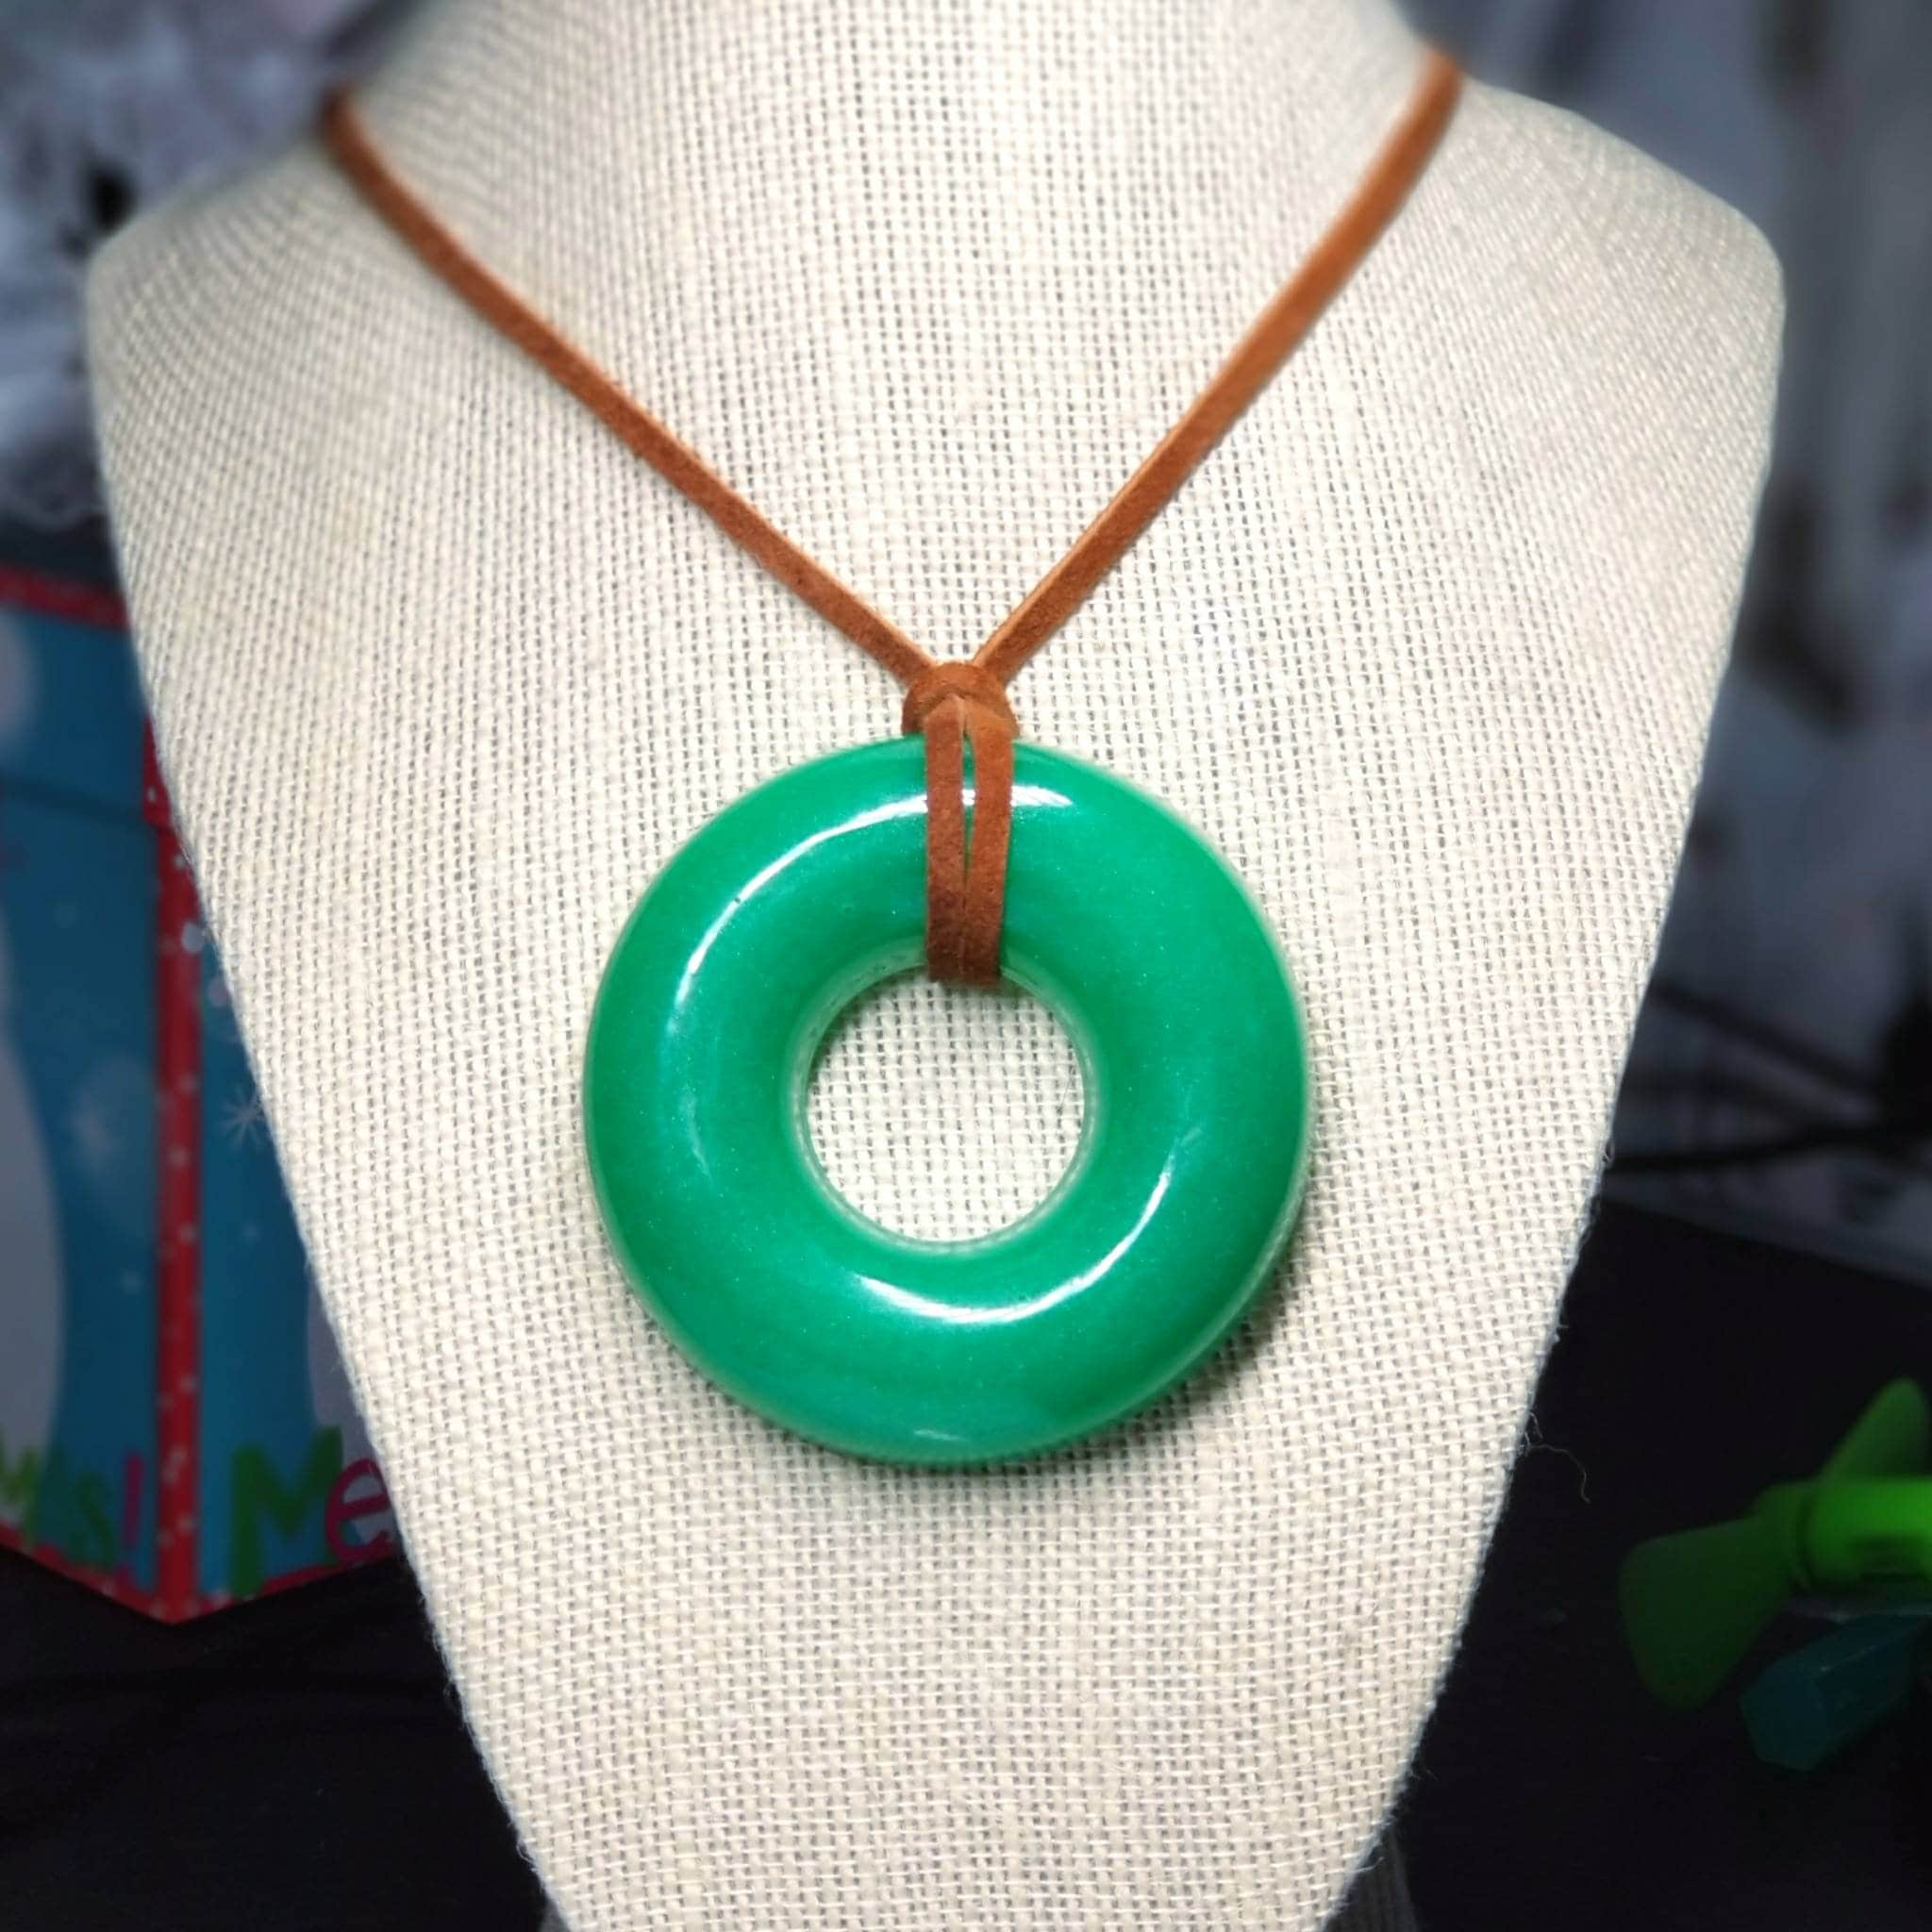 today x gold circle necklace pendant overstock yellow inch jade jewelry product shipping watches green free